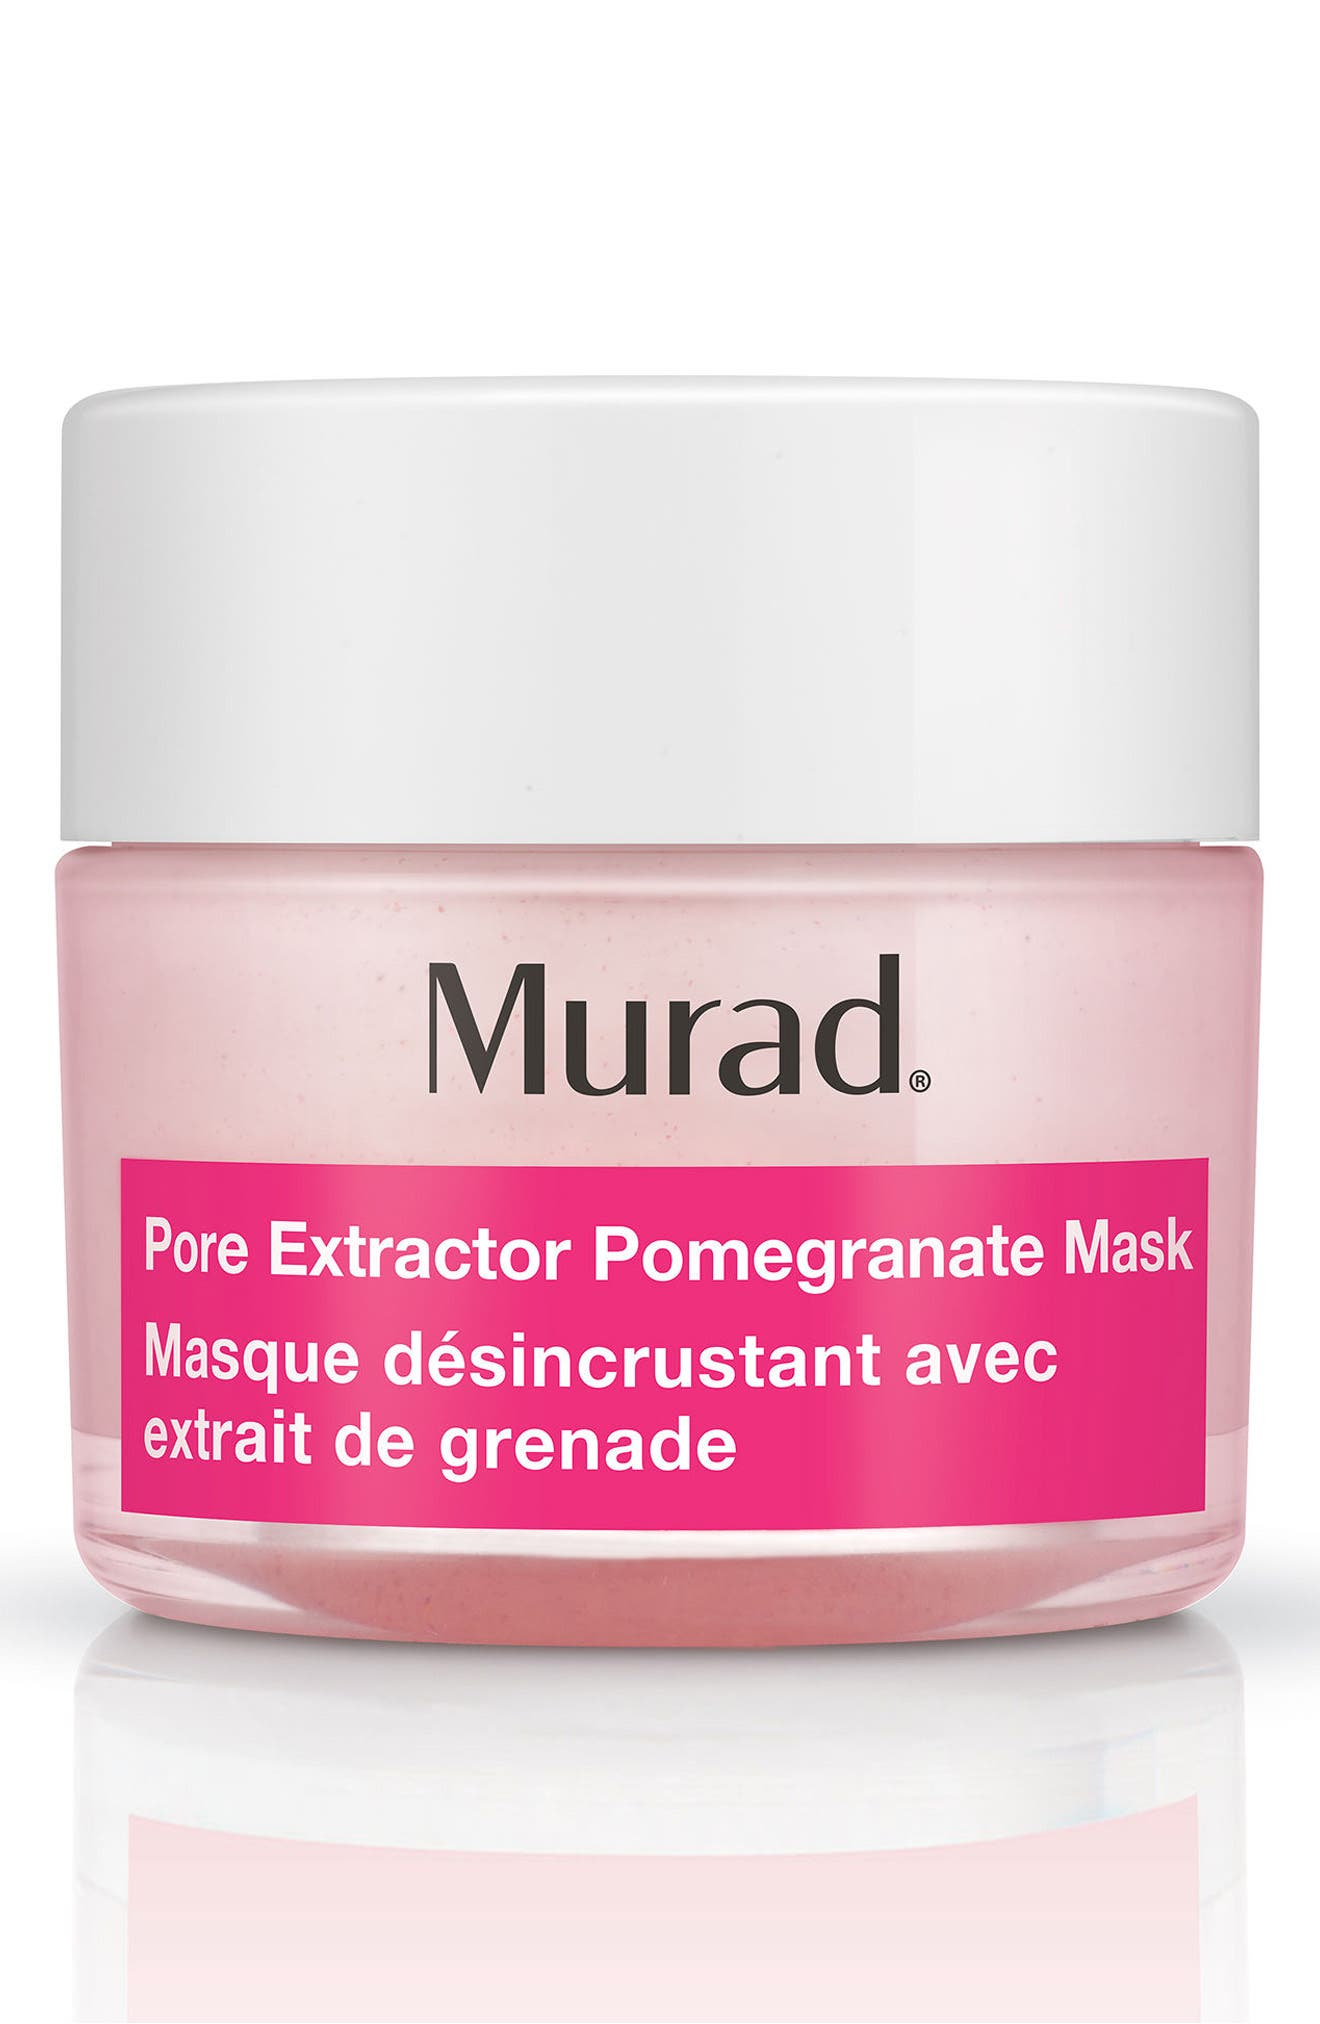 Murad® Pore Extractor Pomegranate Mask